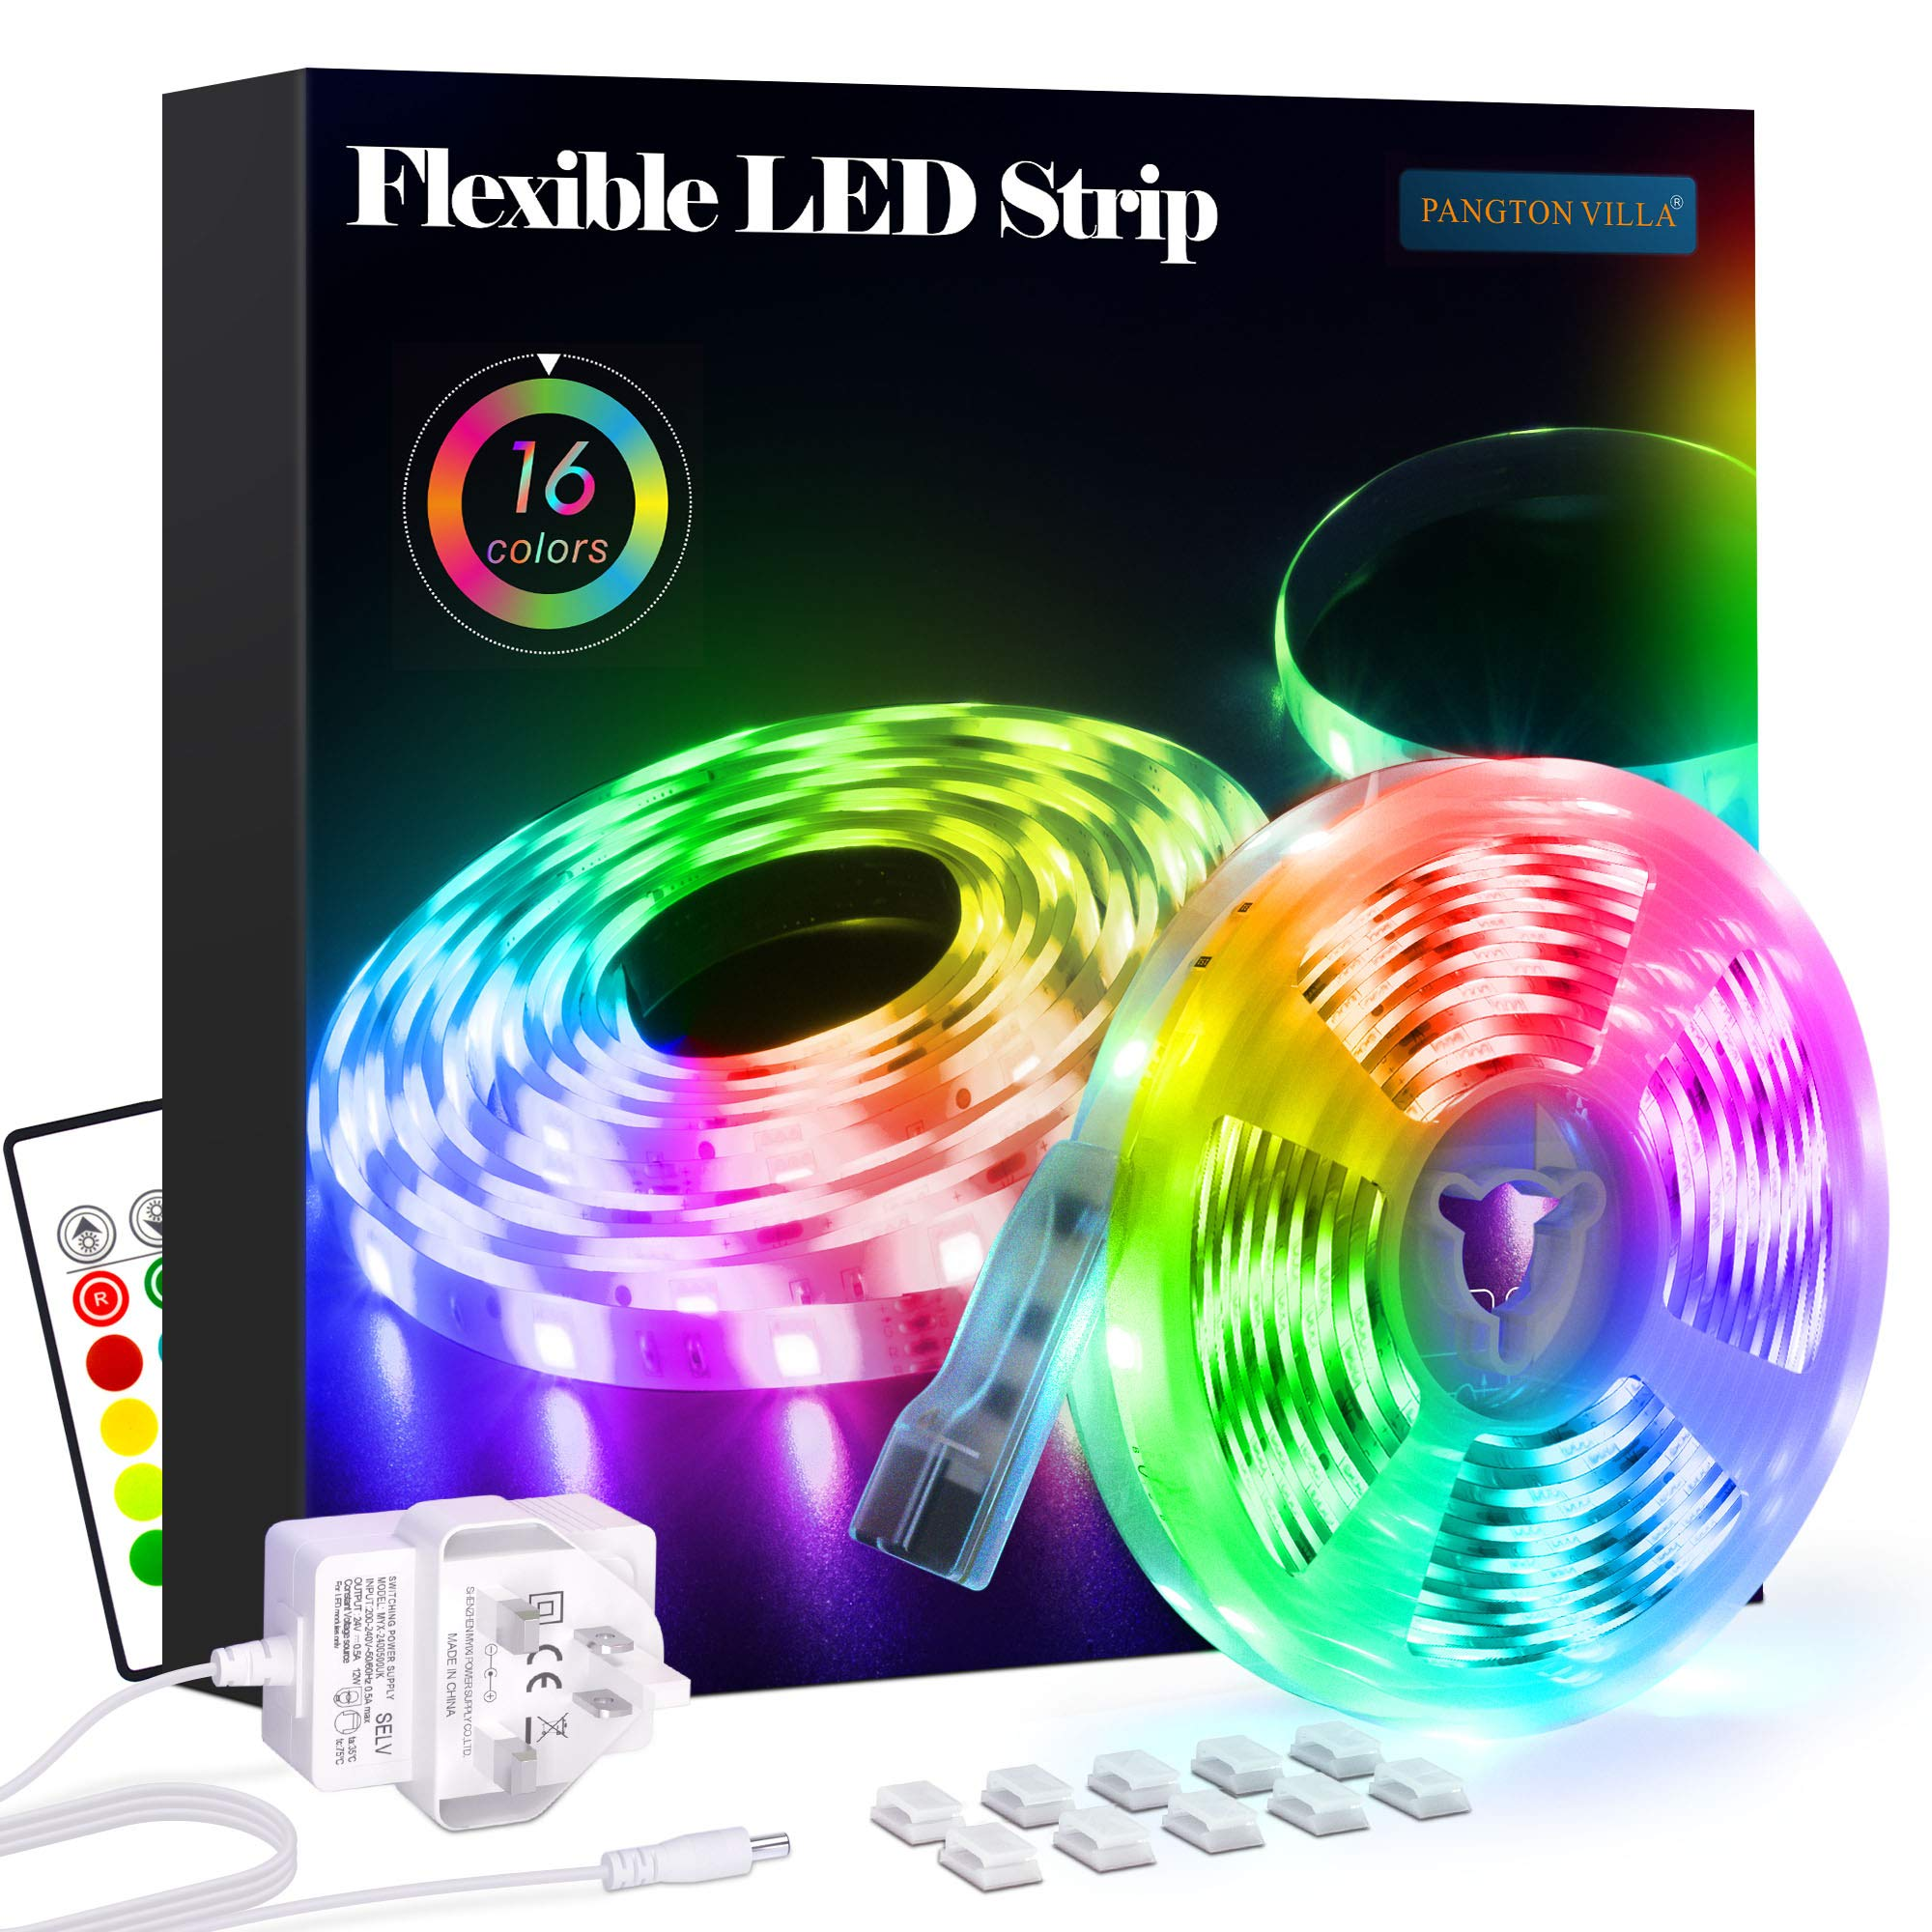 LED Strip Lights 5m, RGB 5050 LEDs Colour Changing Kit with 24key Remote Control and Power Supply, Mood Lighting Led Lights for Bedroom Home Kitchen Christmas Indoor Decoration [Energy Class A+]